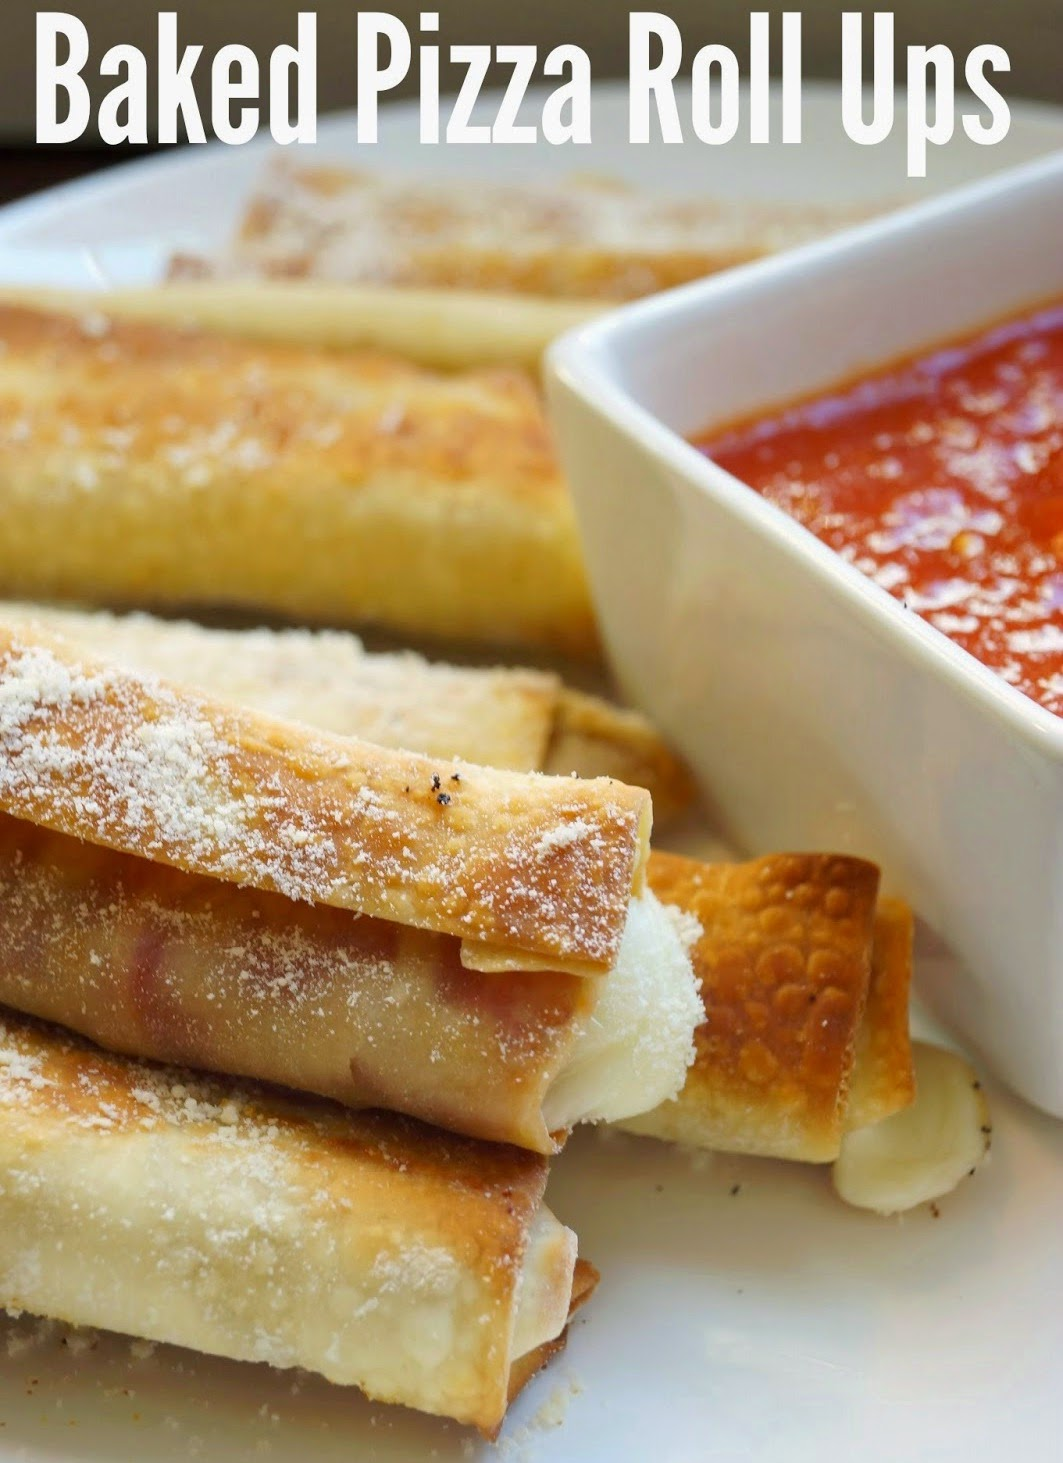 Baked Pizza Roll Ups   A quick and delicious way to prepare pizza! These are made with part skim cheese and turkey pepperoni so are on the healthier side as well!